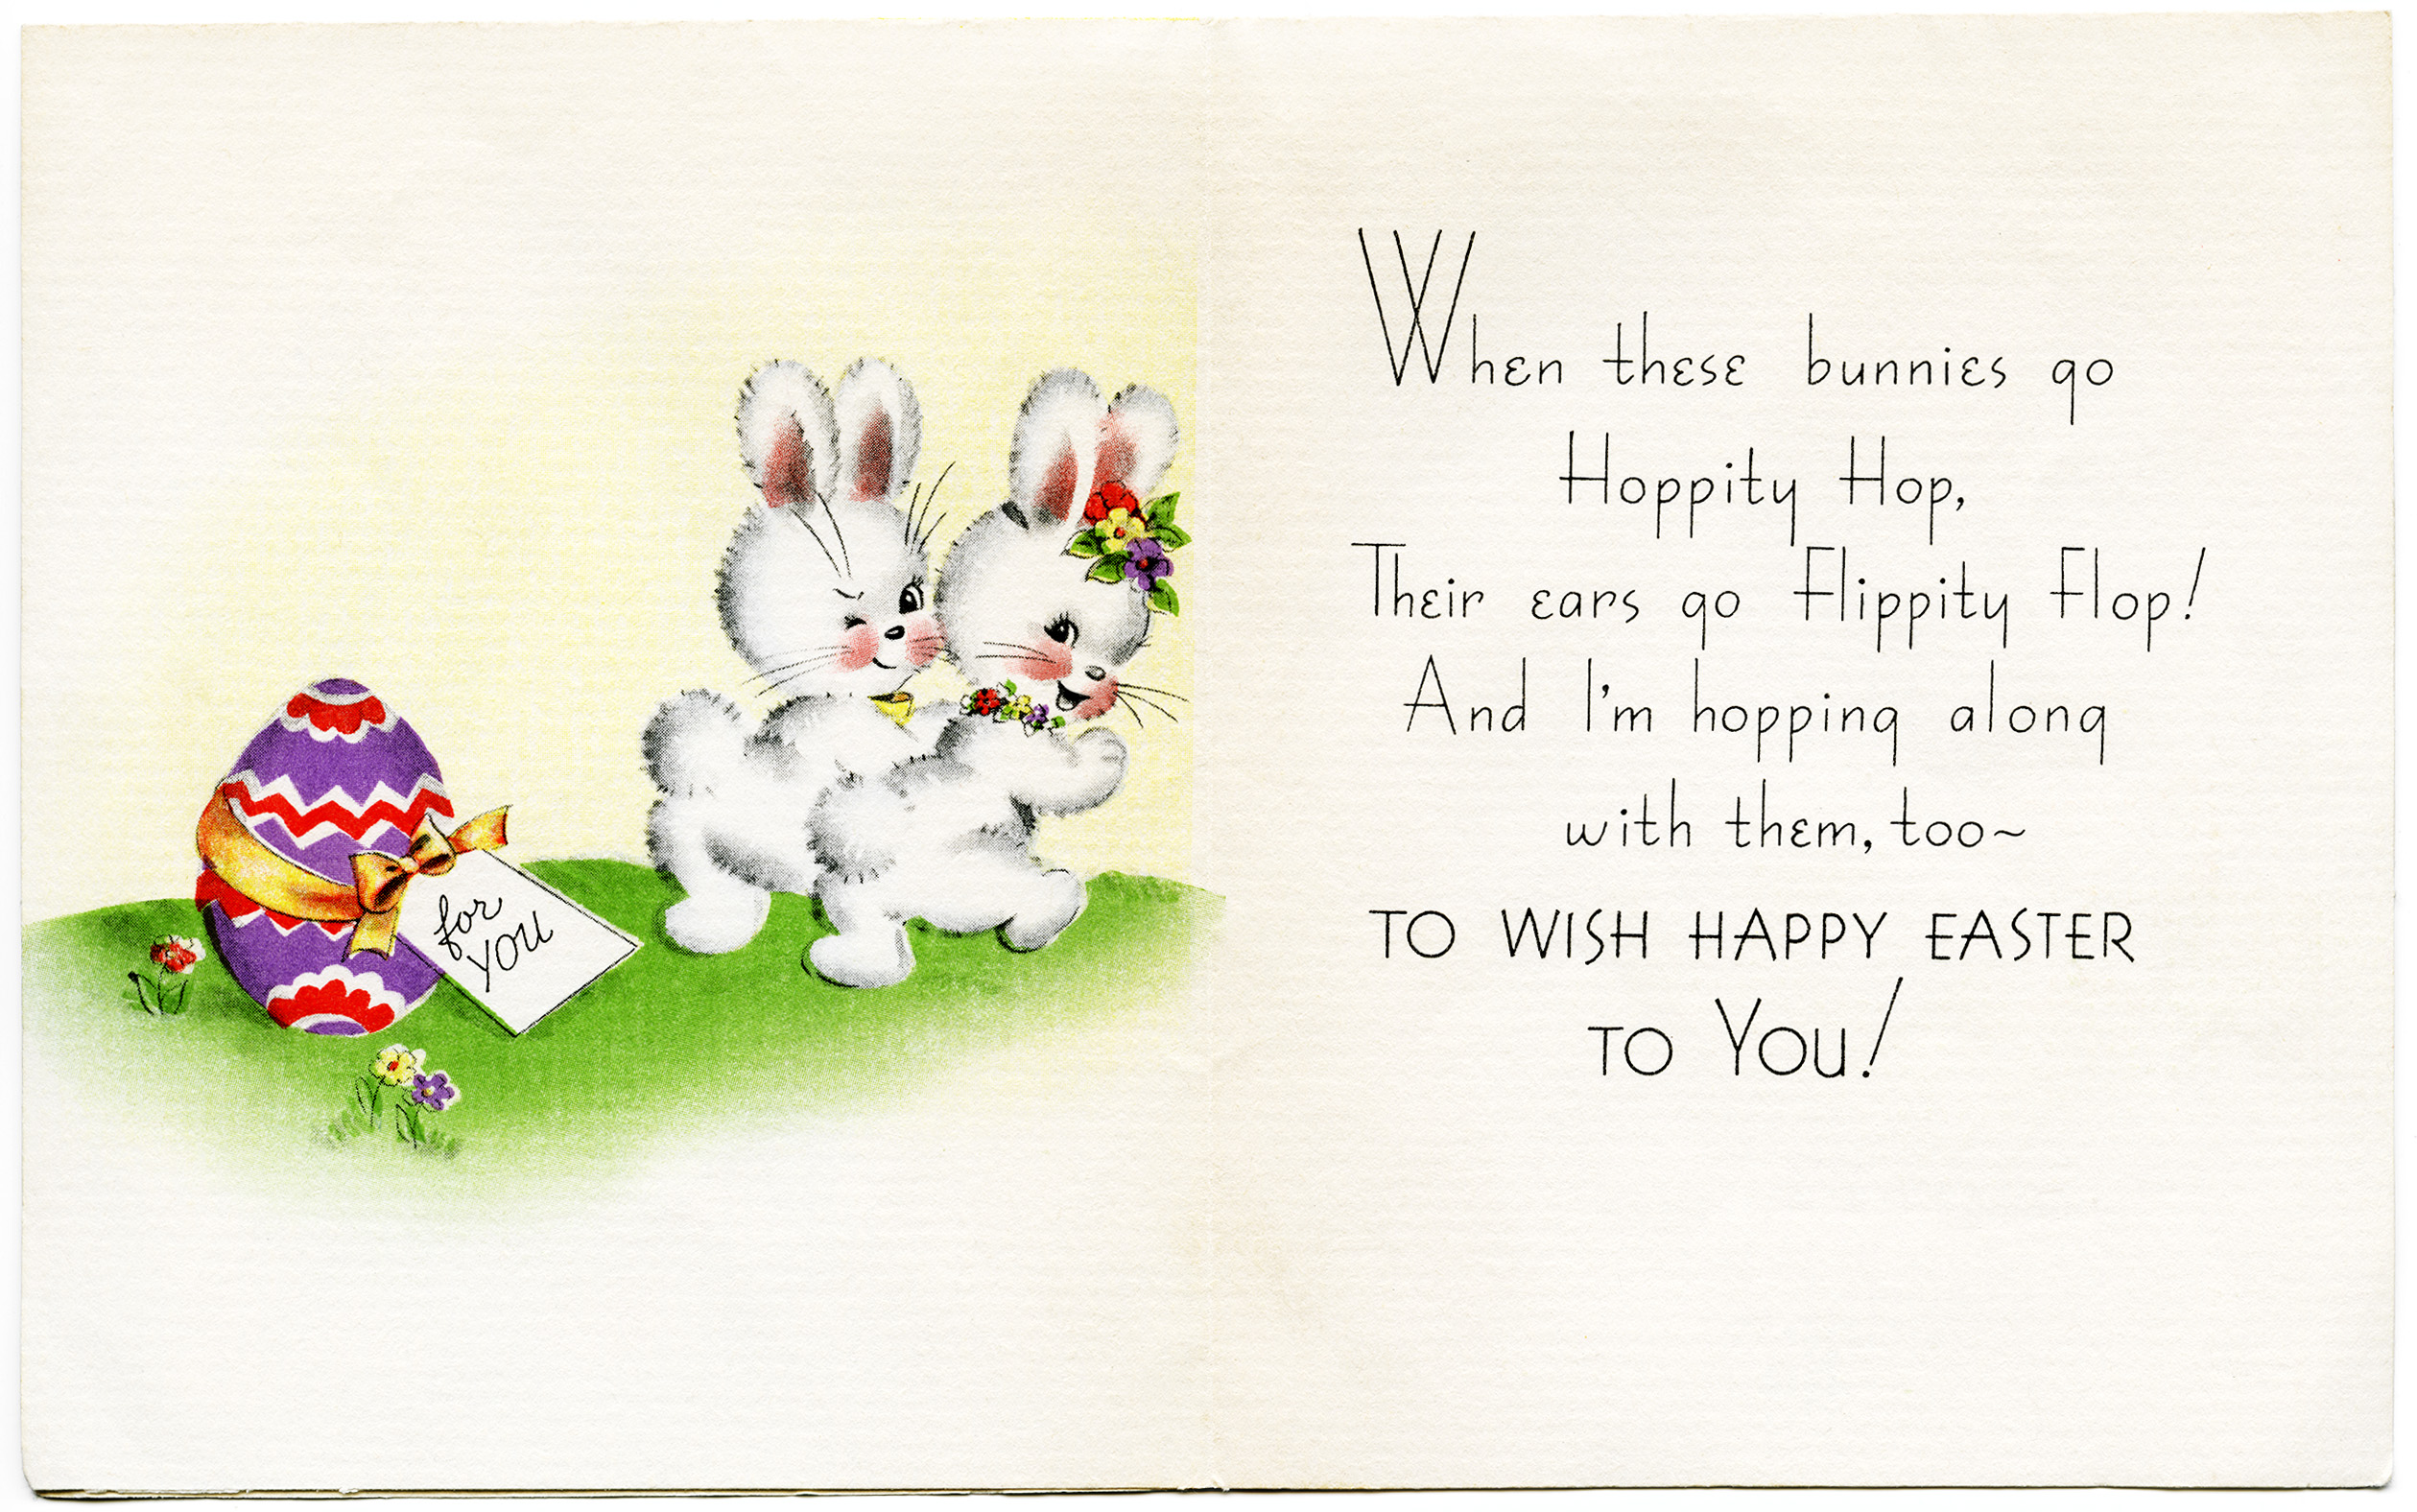 Easter card messages free vintage image bunnies easter card old design shop blog m4hsunfo